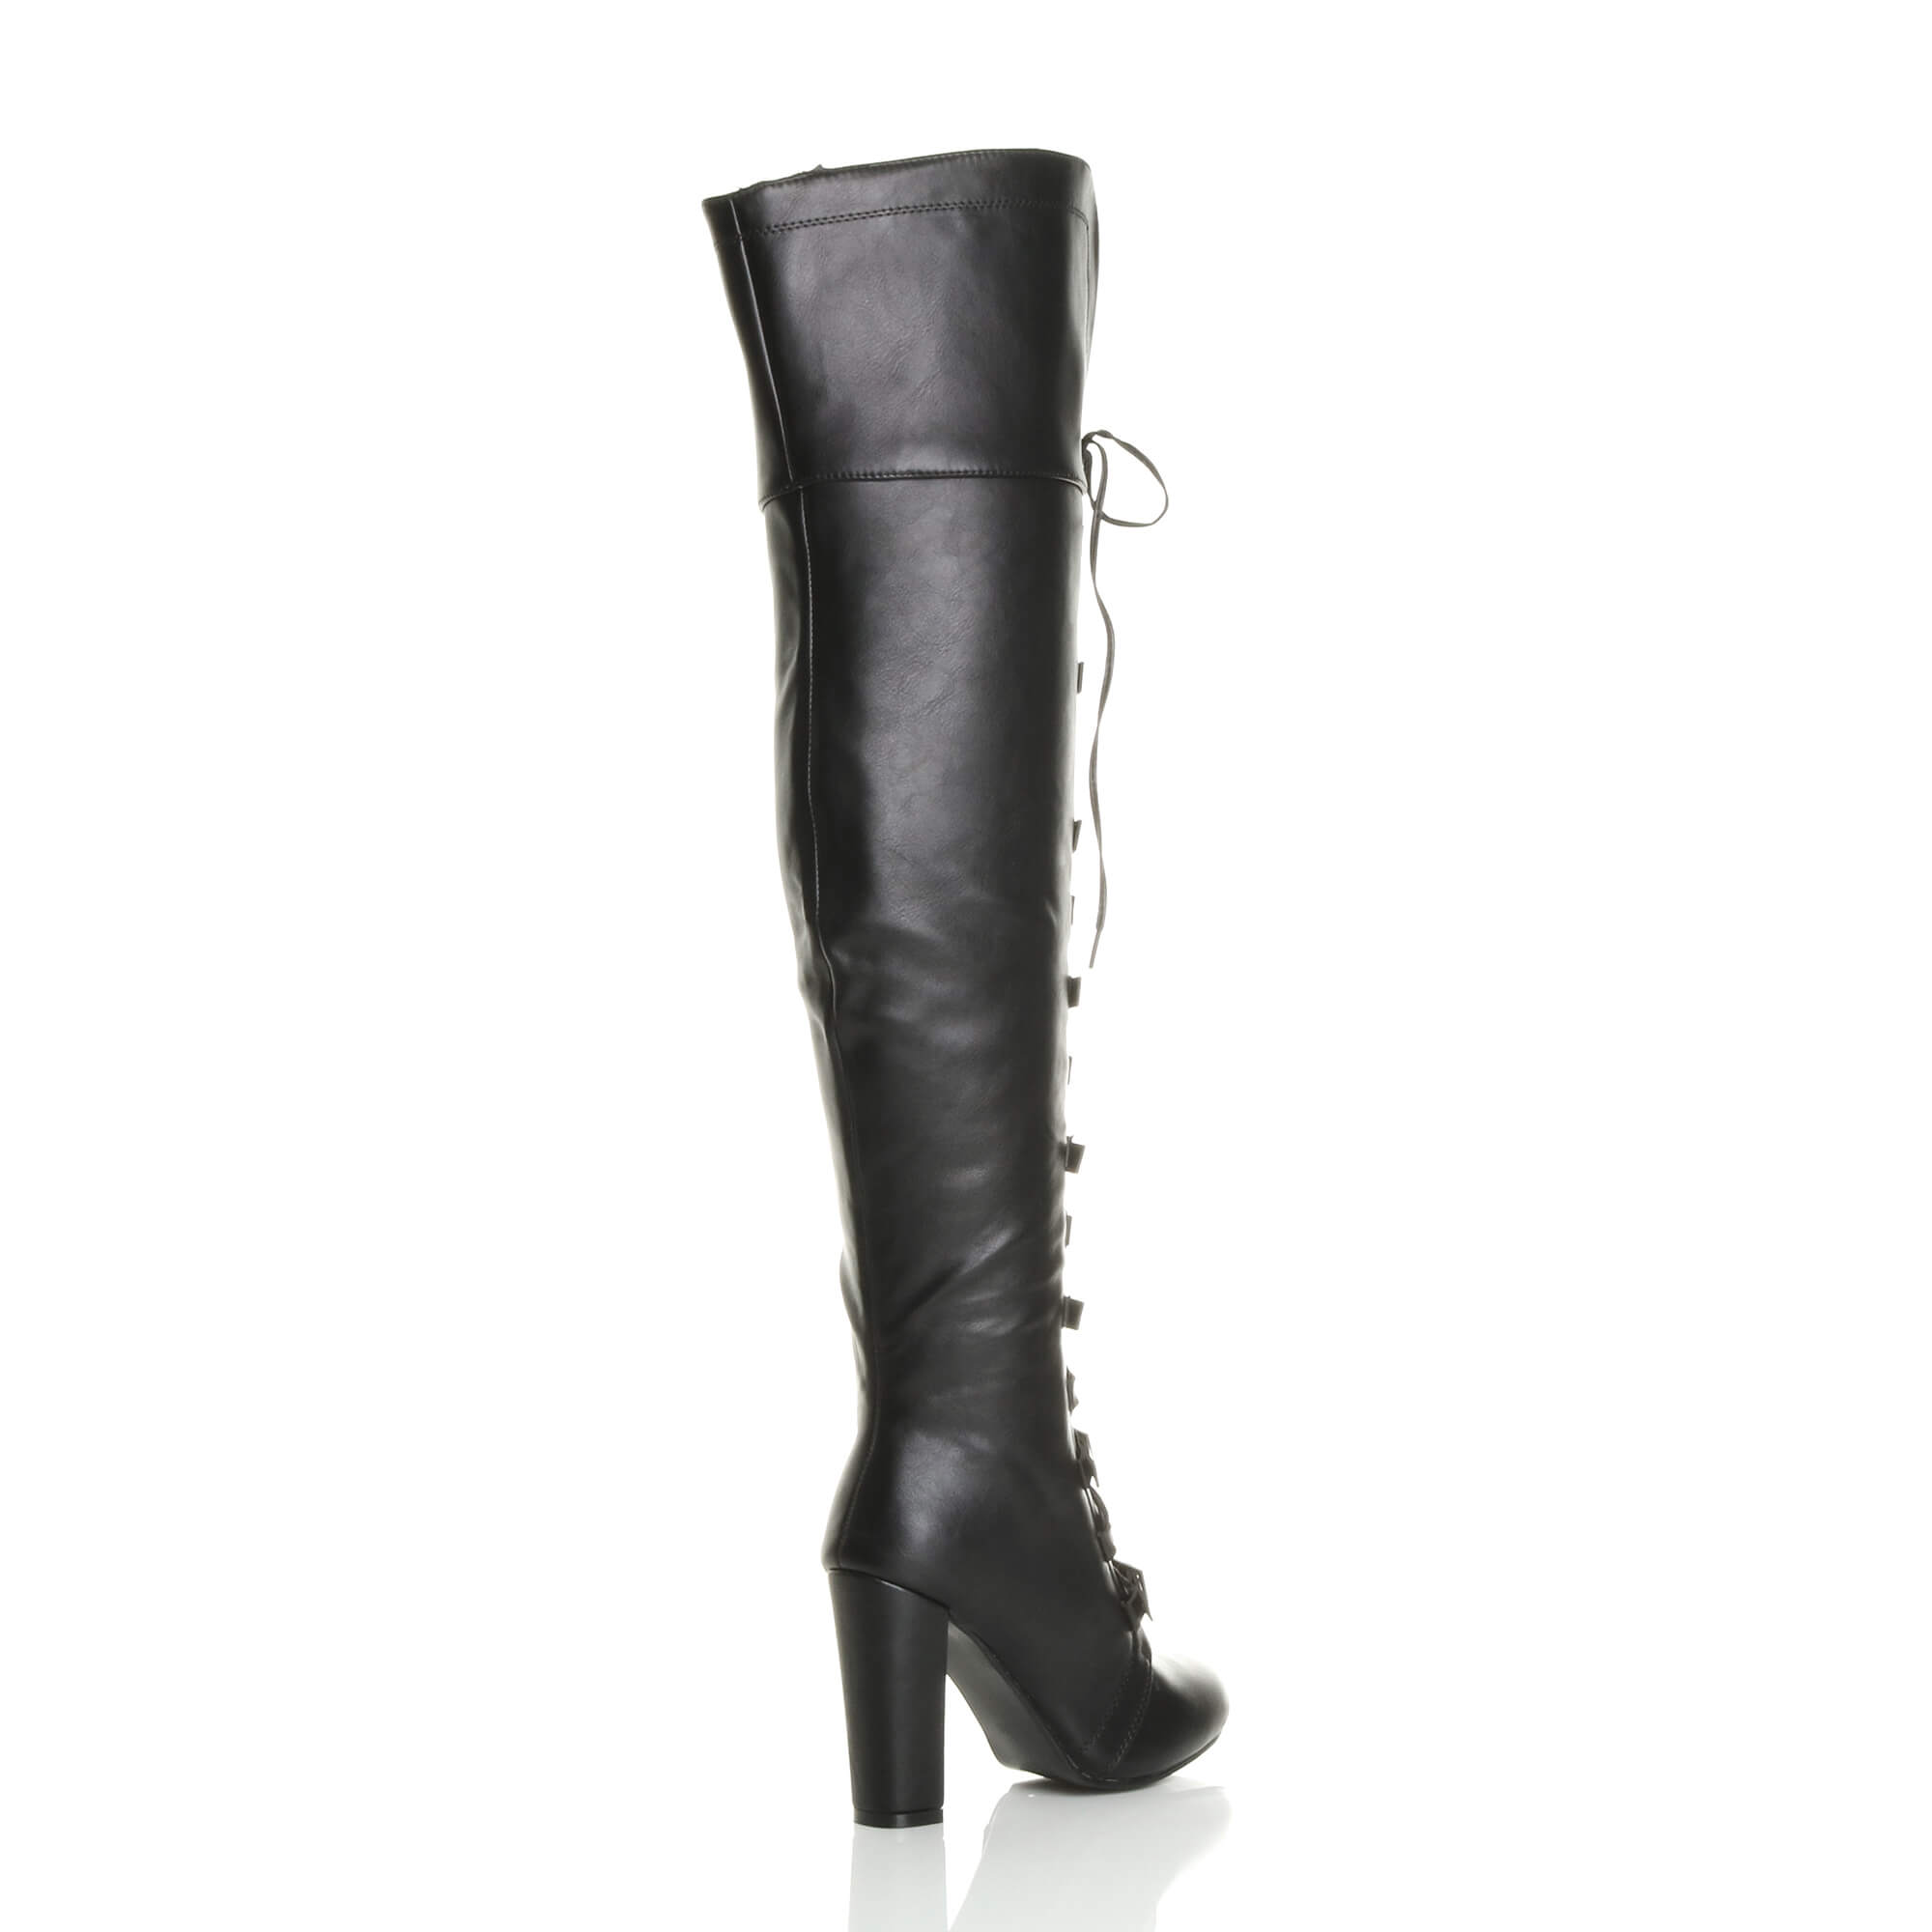 WOMENS-LADIES-HIGH-BLOCK-HEEL-LACE-UP-BUCKLE-PIRATE-OVER-KNEE-THIGH-BOOTS-SIZE